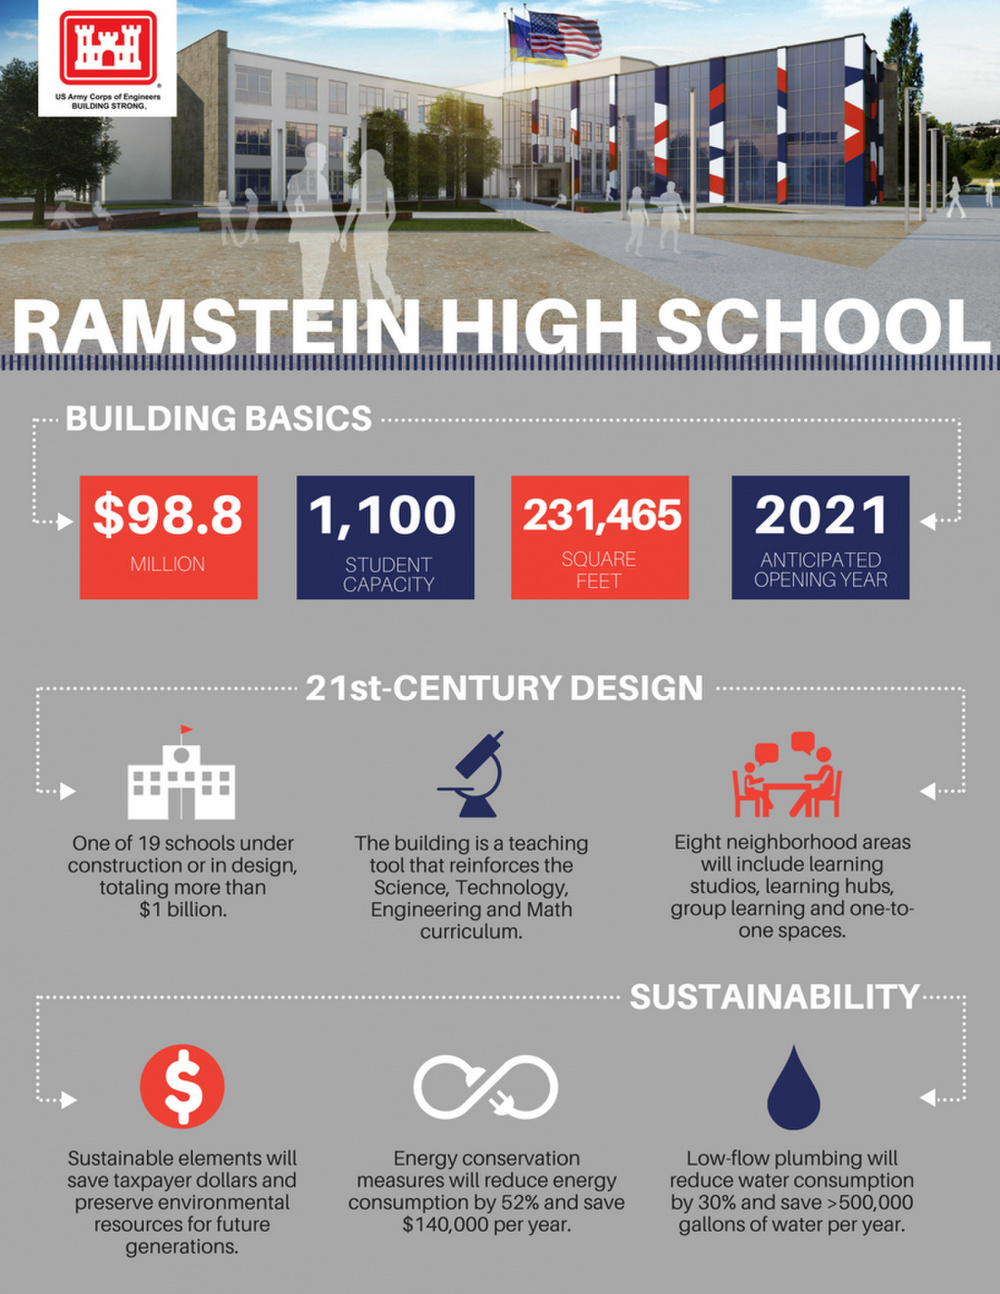 Ramstein High School Infographic